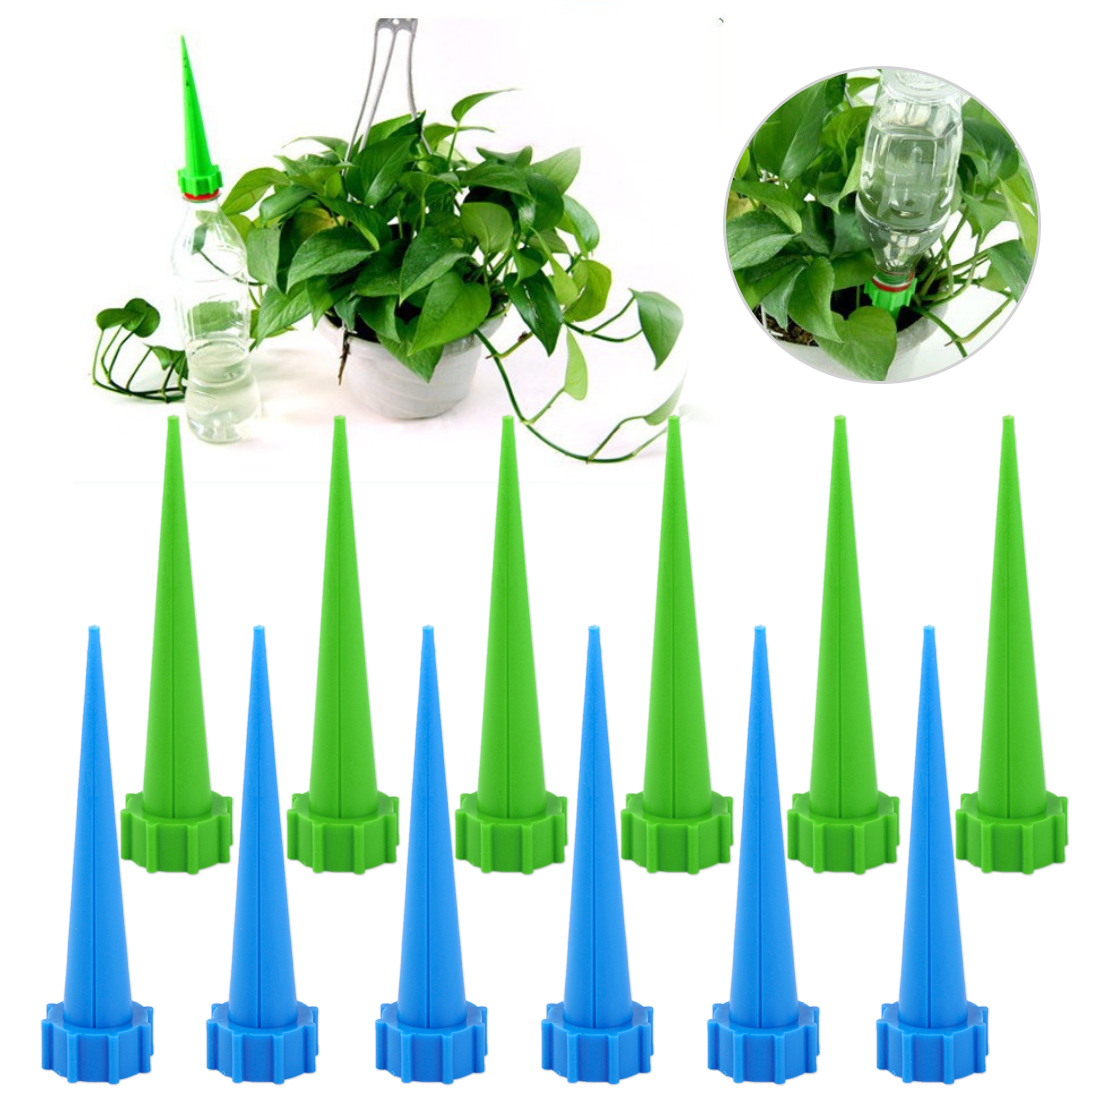 Auto Self Watering System Plant Water Drip Irrigation Garden Cone Watering Spike